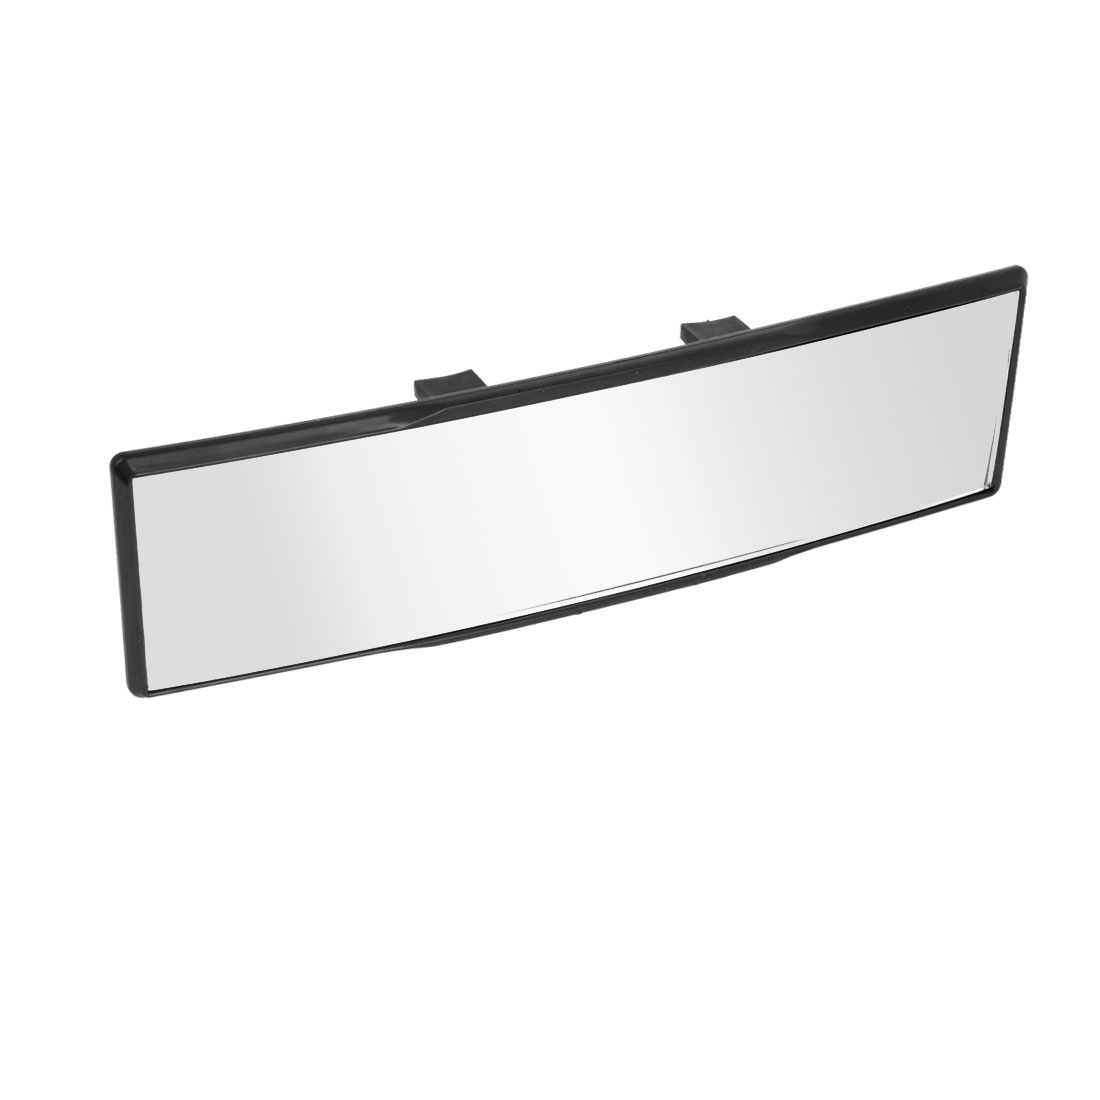 270mm Wide Convex Curve Interior Clip On Panoramic Rear View Mirror